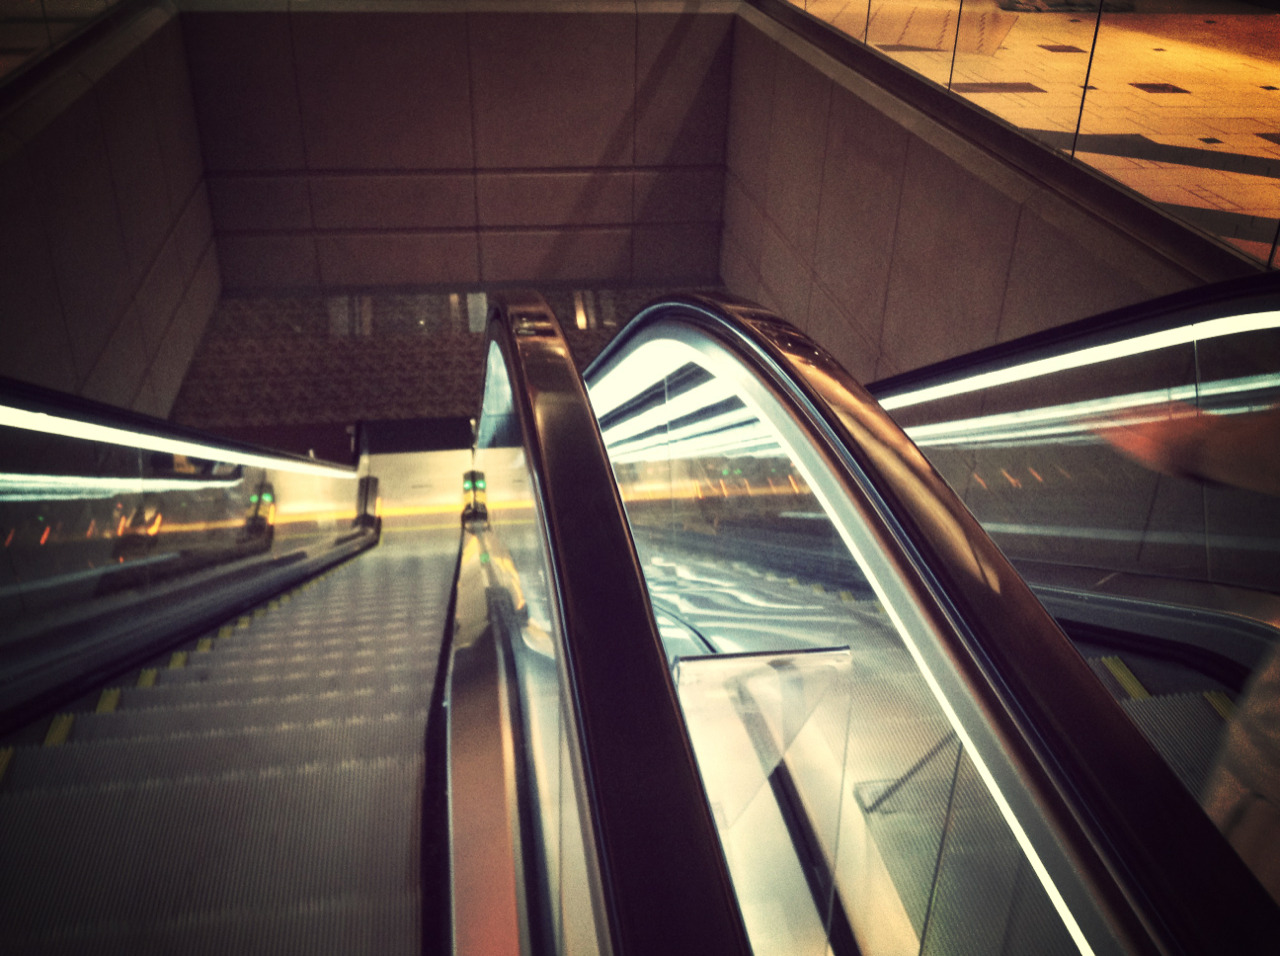 One of my favorite pictures that I have taken. An escalator in a Phoenix airport.